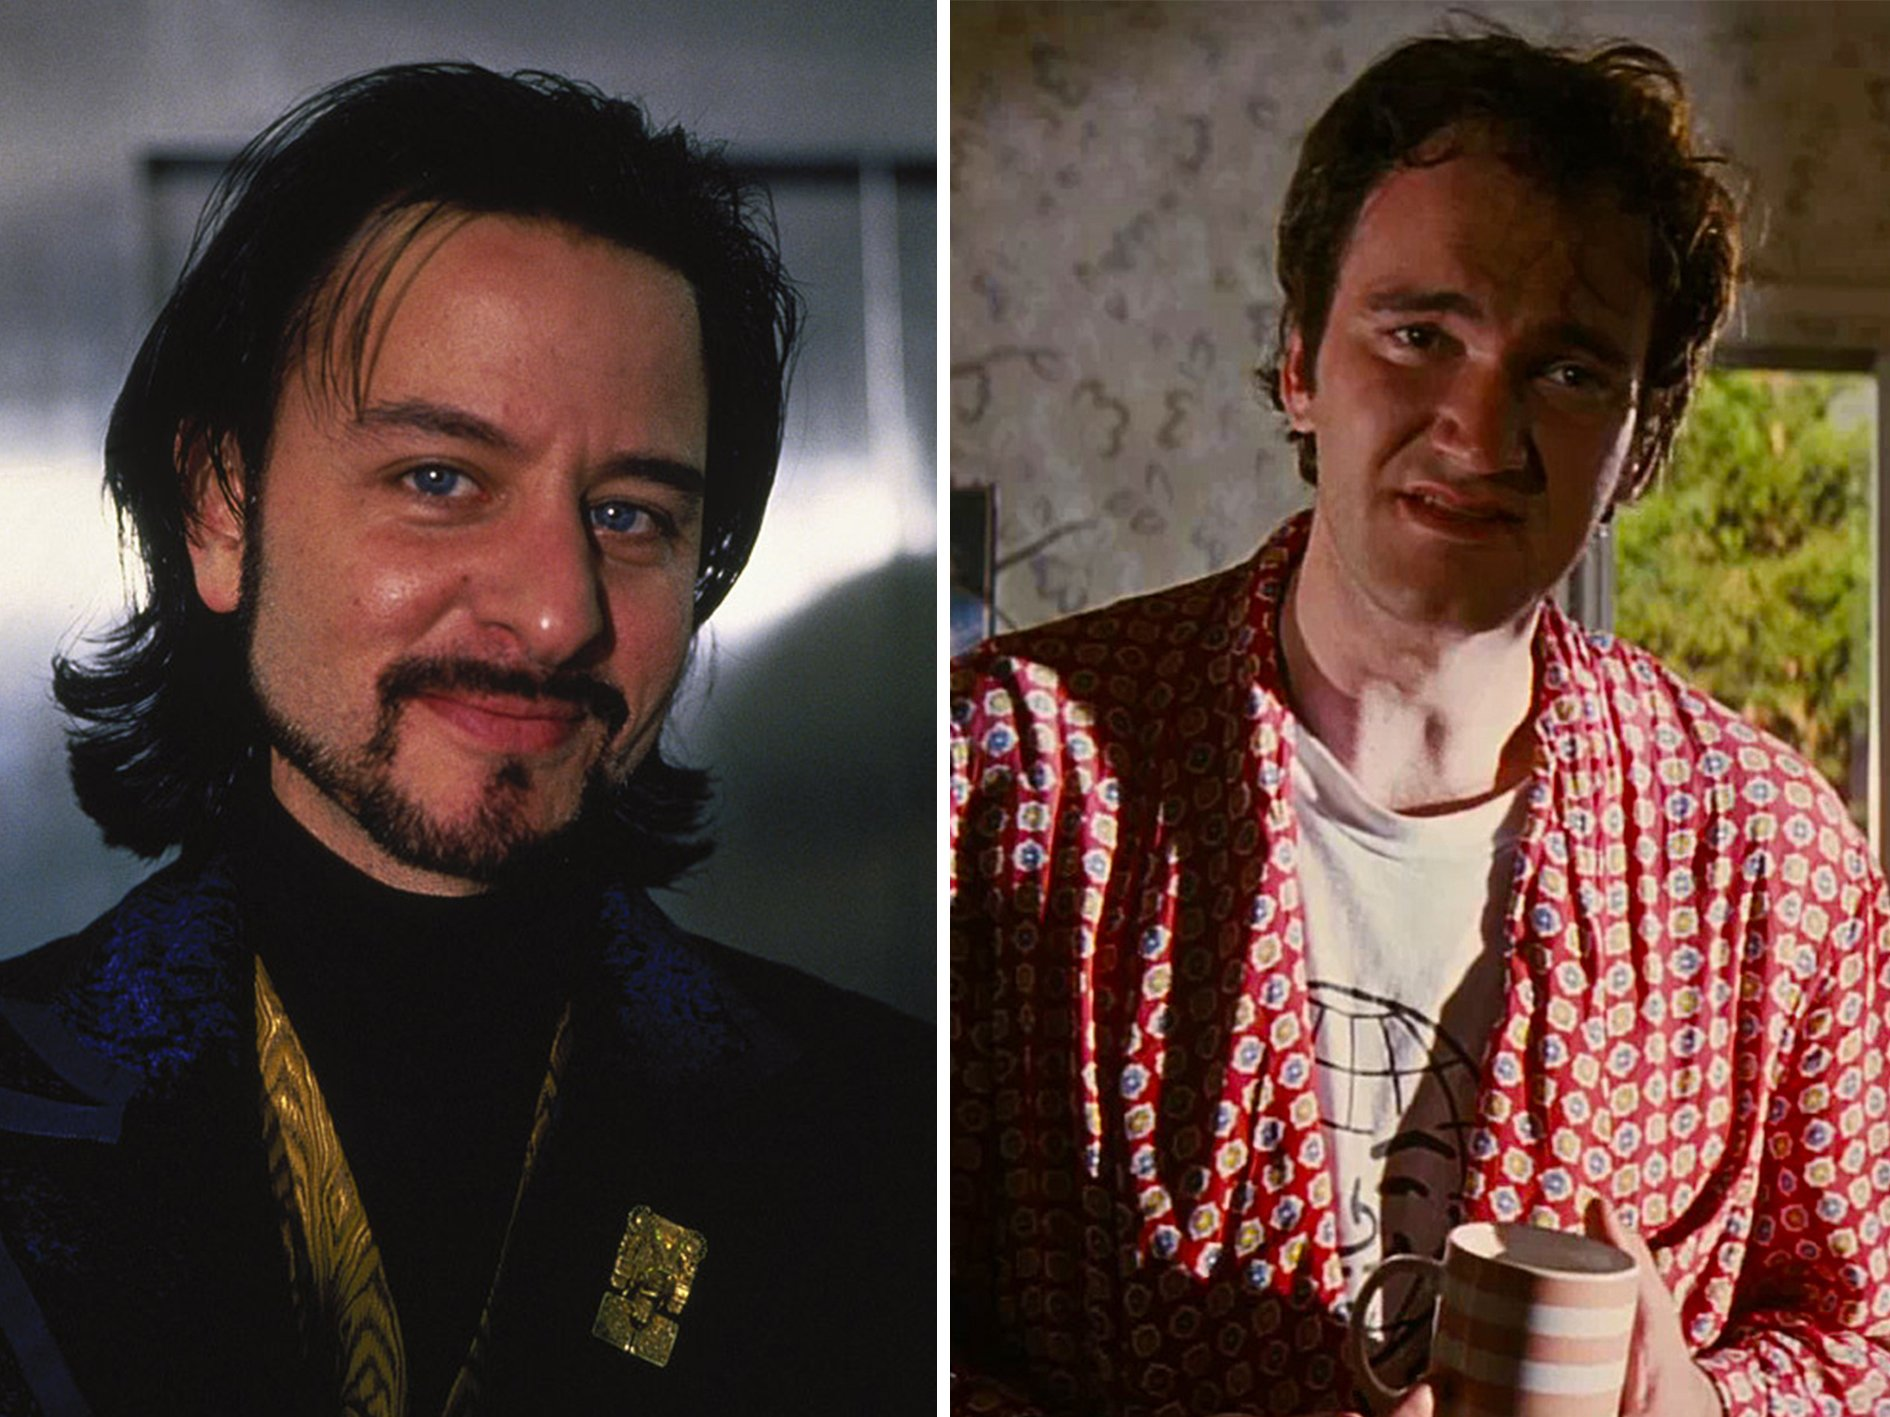 Fisher Stevens Quentin Tarantino Hackers 1 10 Things You Probably Didn't Know About Hackers